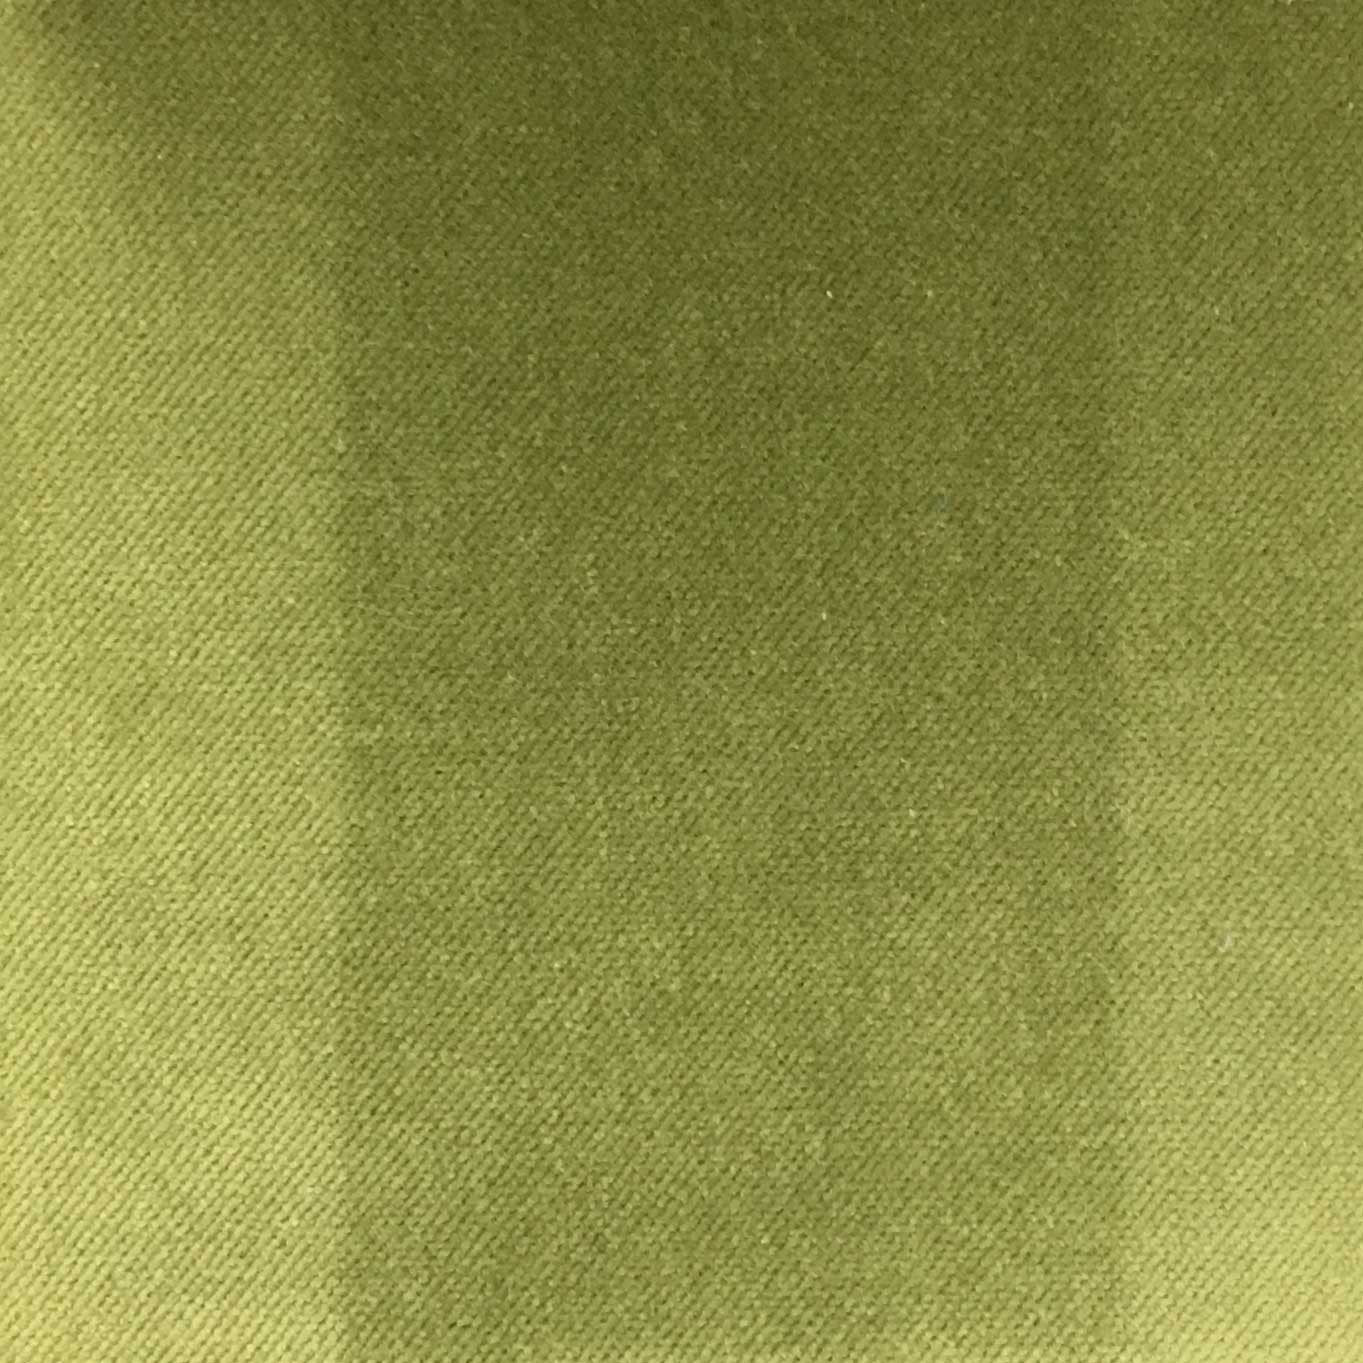 Bowie 100 cotton velvet upholstery fabric by the yard for Cloth by the yard